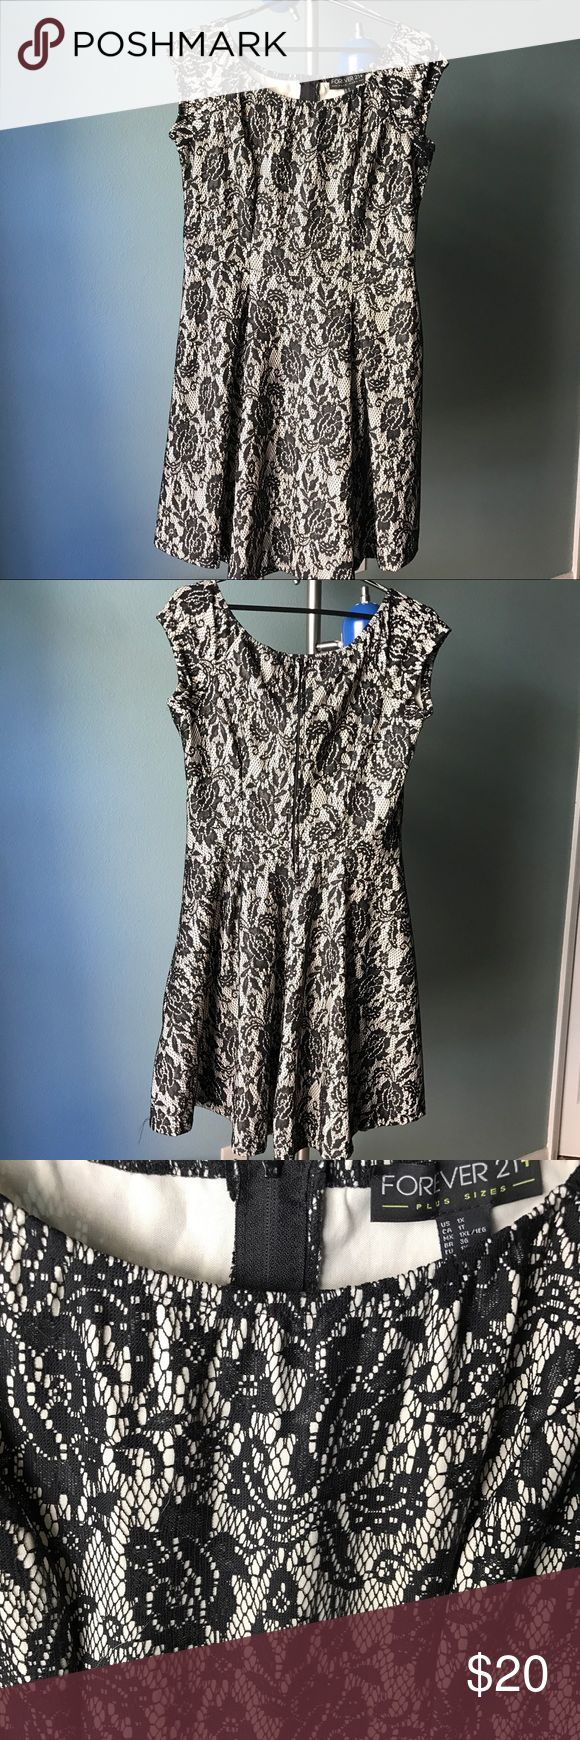 Black & cream lace skater party dress Forever 21 Scoop neck lace black and cream party dress. Back zip. Worn only once. Machine washable and Unlined. Skater style in plus size 1X. Delicate lace floral pattern. Fabric is polyester and has a little bit of stretch. Waist darts so it looks more fitted at waistline. Forever 21 Dresses Midi